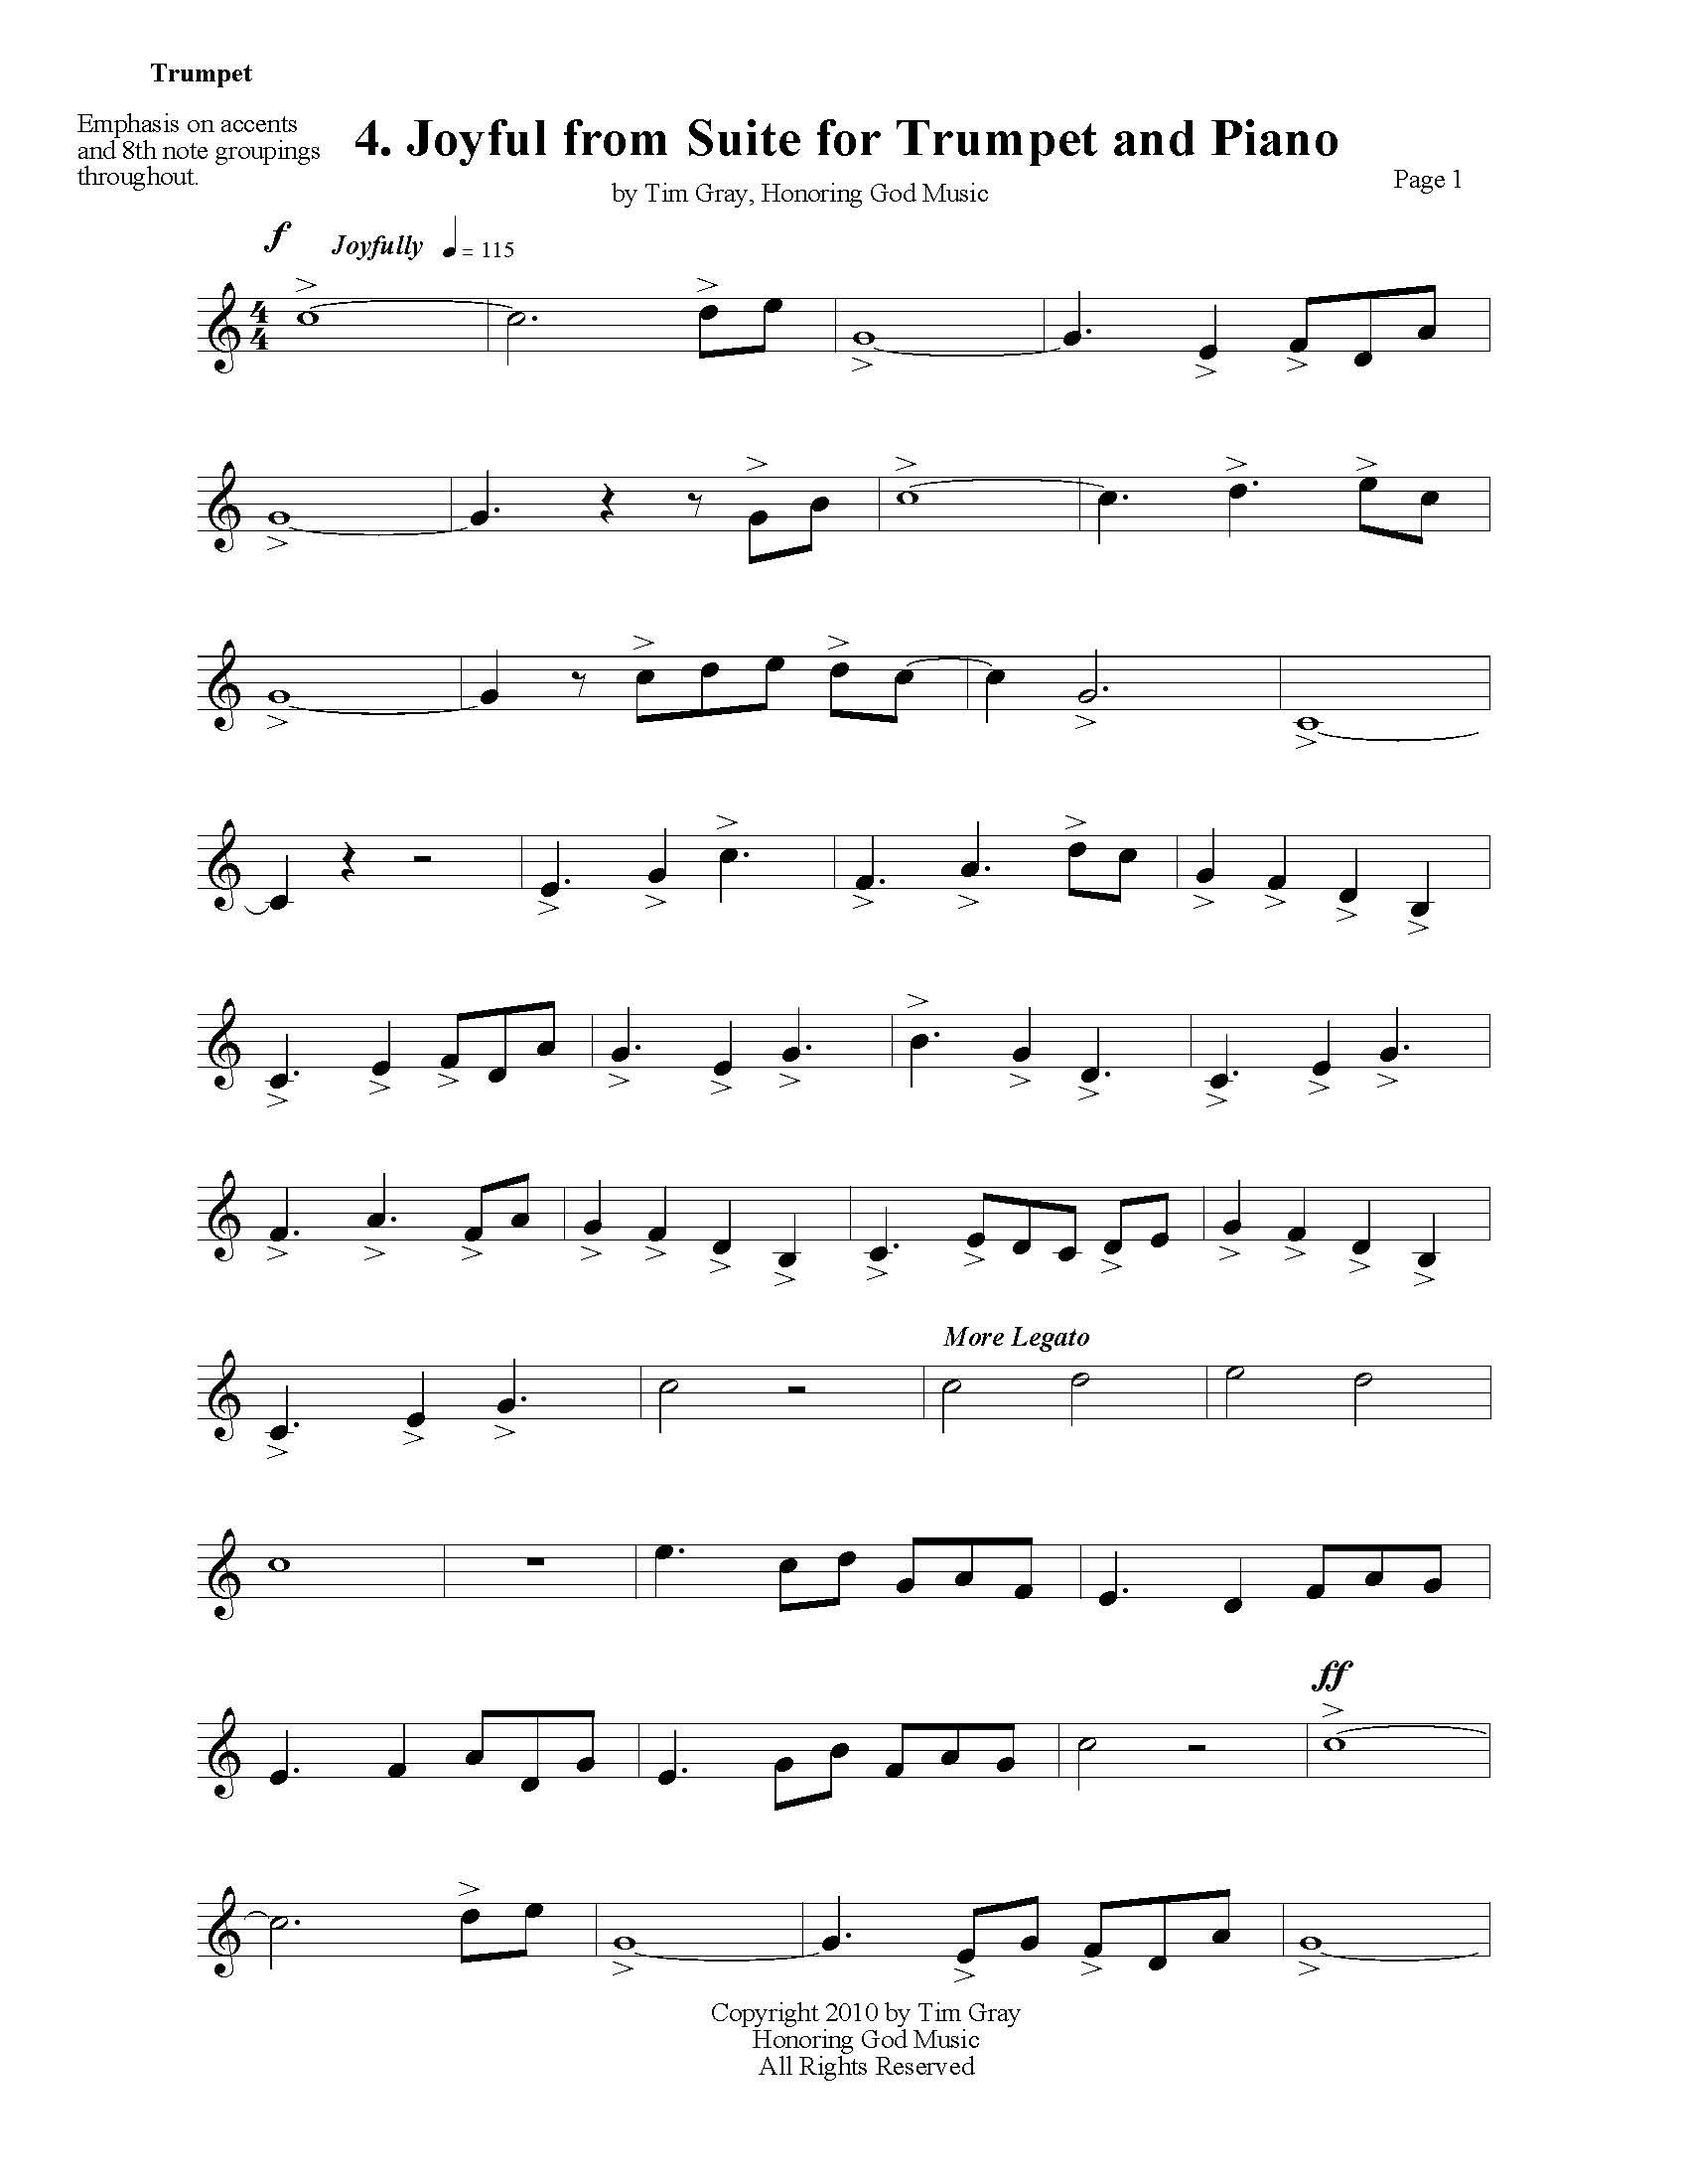 Joyful from Suite for Trumpet and Piano by Tim Gray sample page at HonoringGodMusic.com